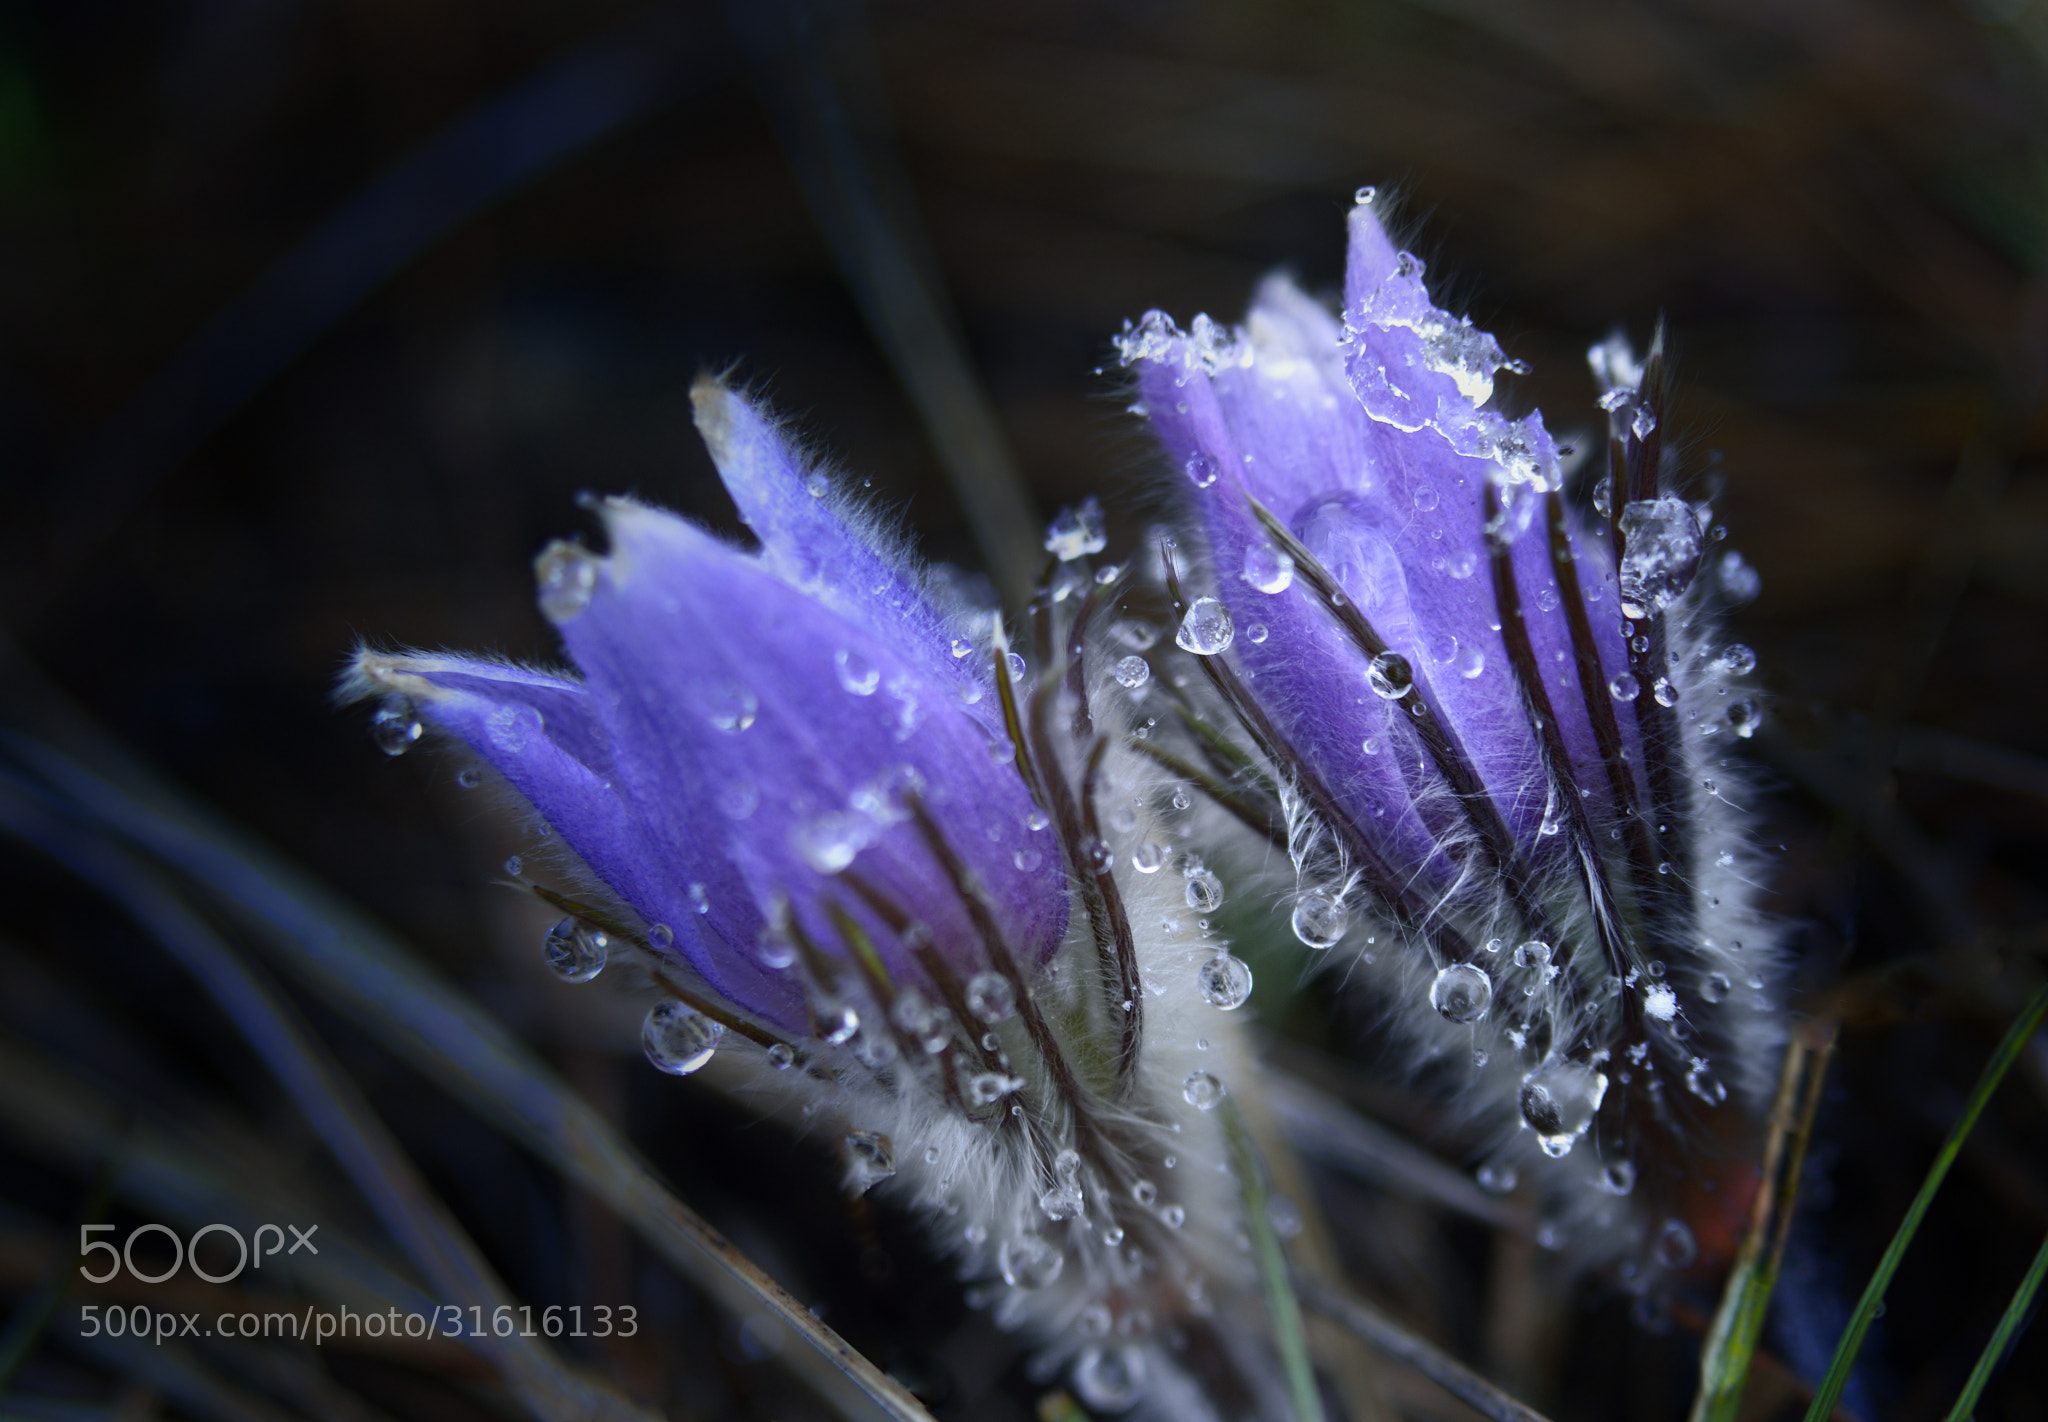 Photograph Flower, Ice and Snow - Calgary's April by Shuchun D on 500px